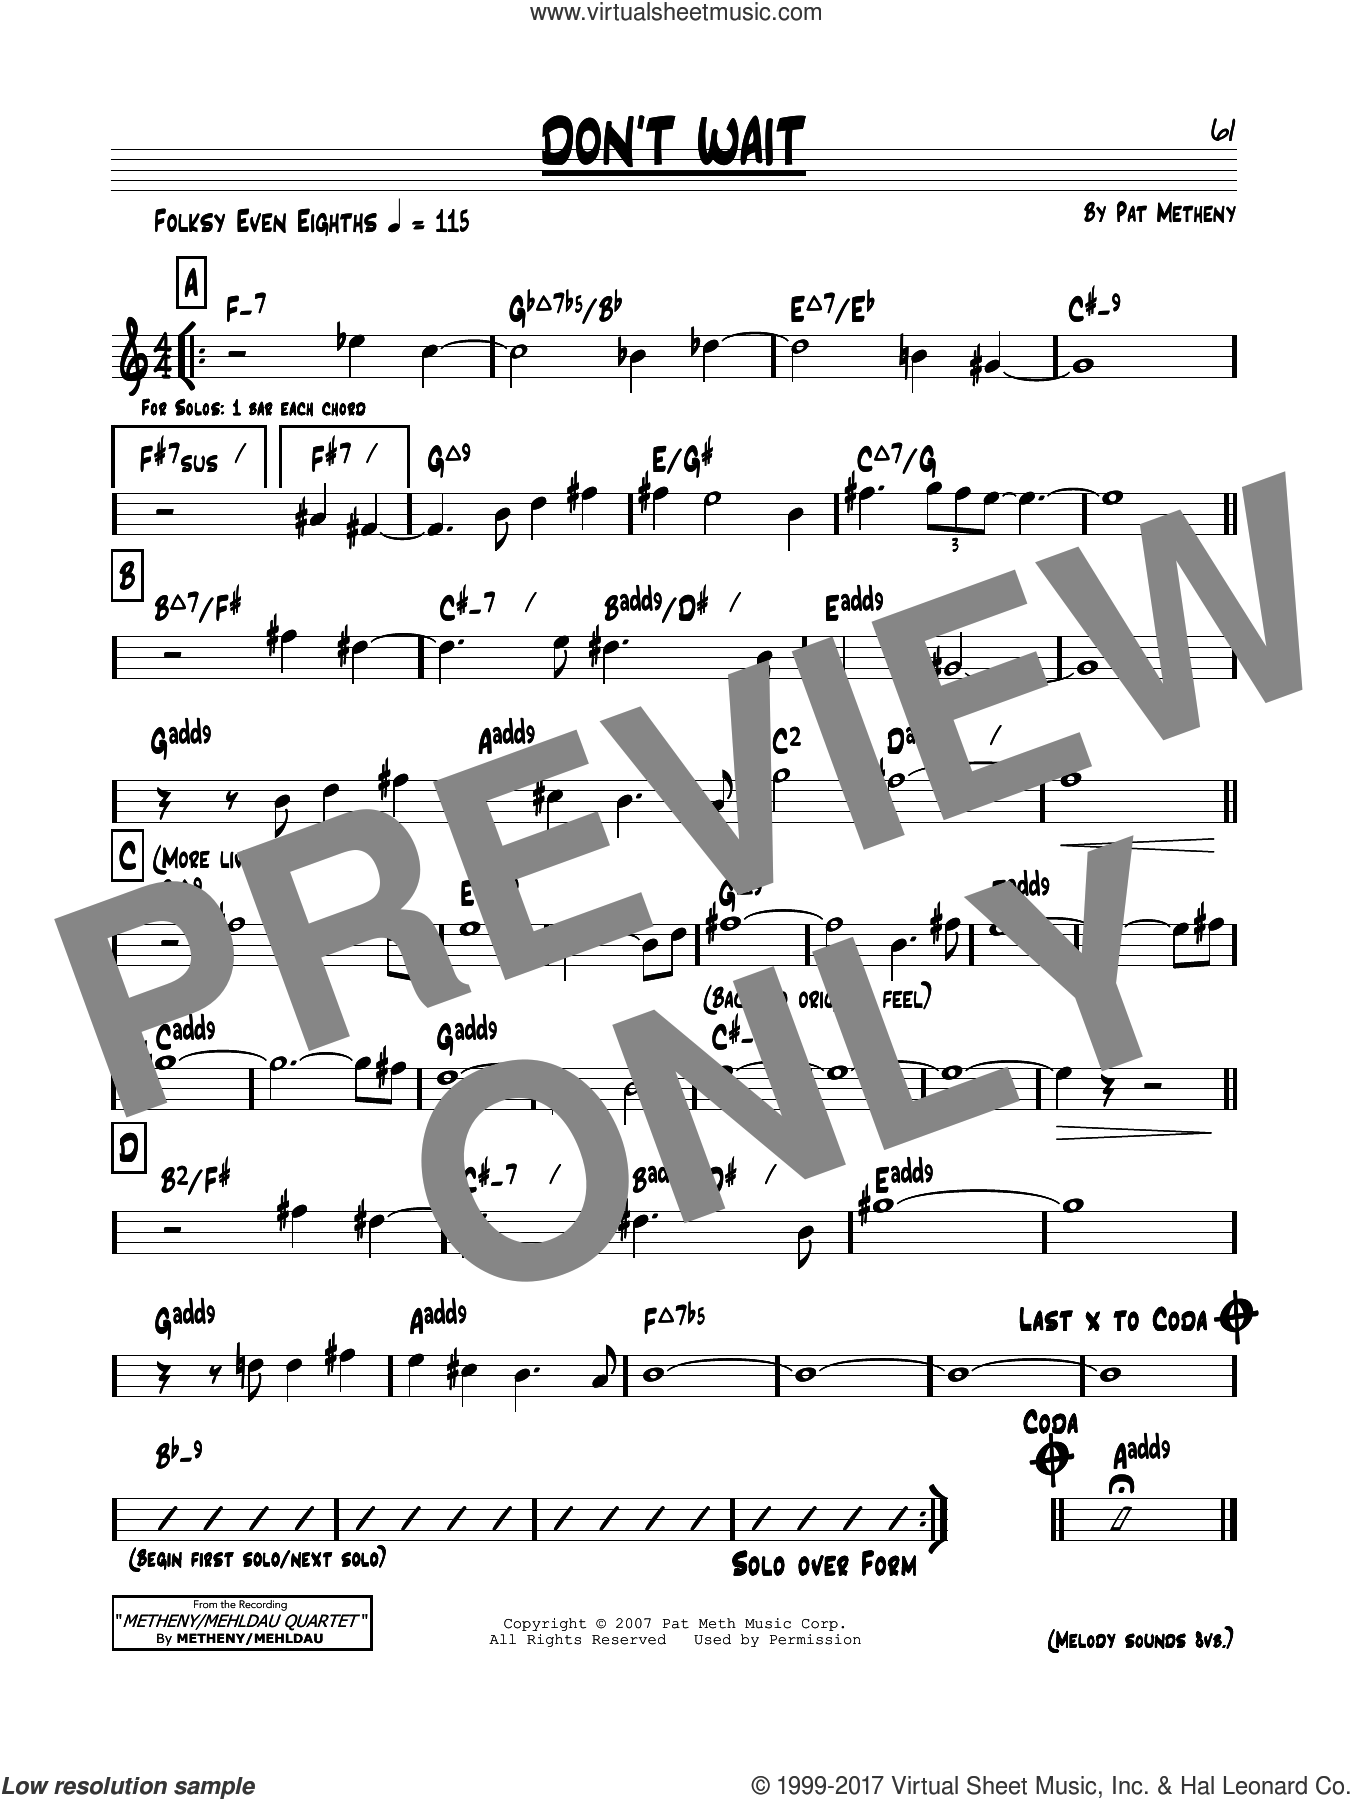 Don't Wait sheet music for voice and other instruments (real book) by Pat Metheny, intermediate skill level